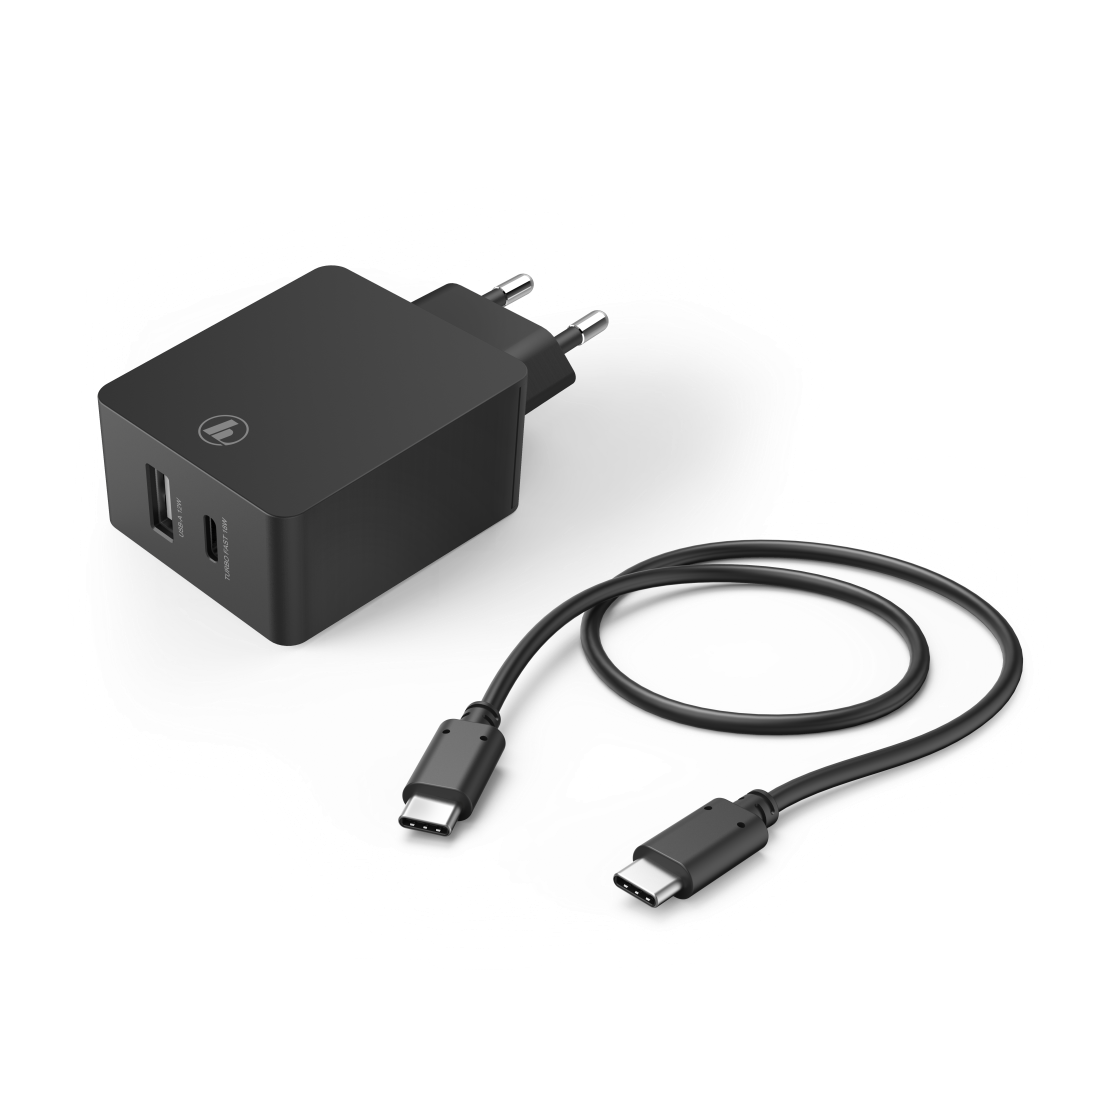 abx2 High-Res Image 2 - Hama, Kit charge secteur, USB-C, USB-A, PD/Qualcomm®,30W, cble USB-C, 1m, nr